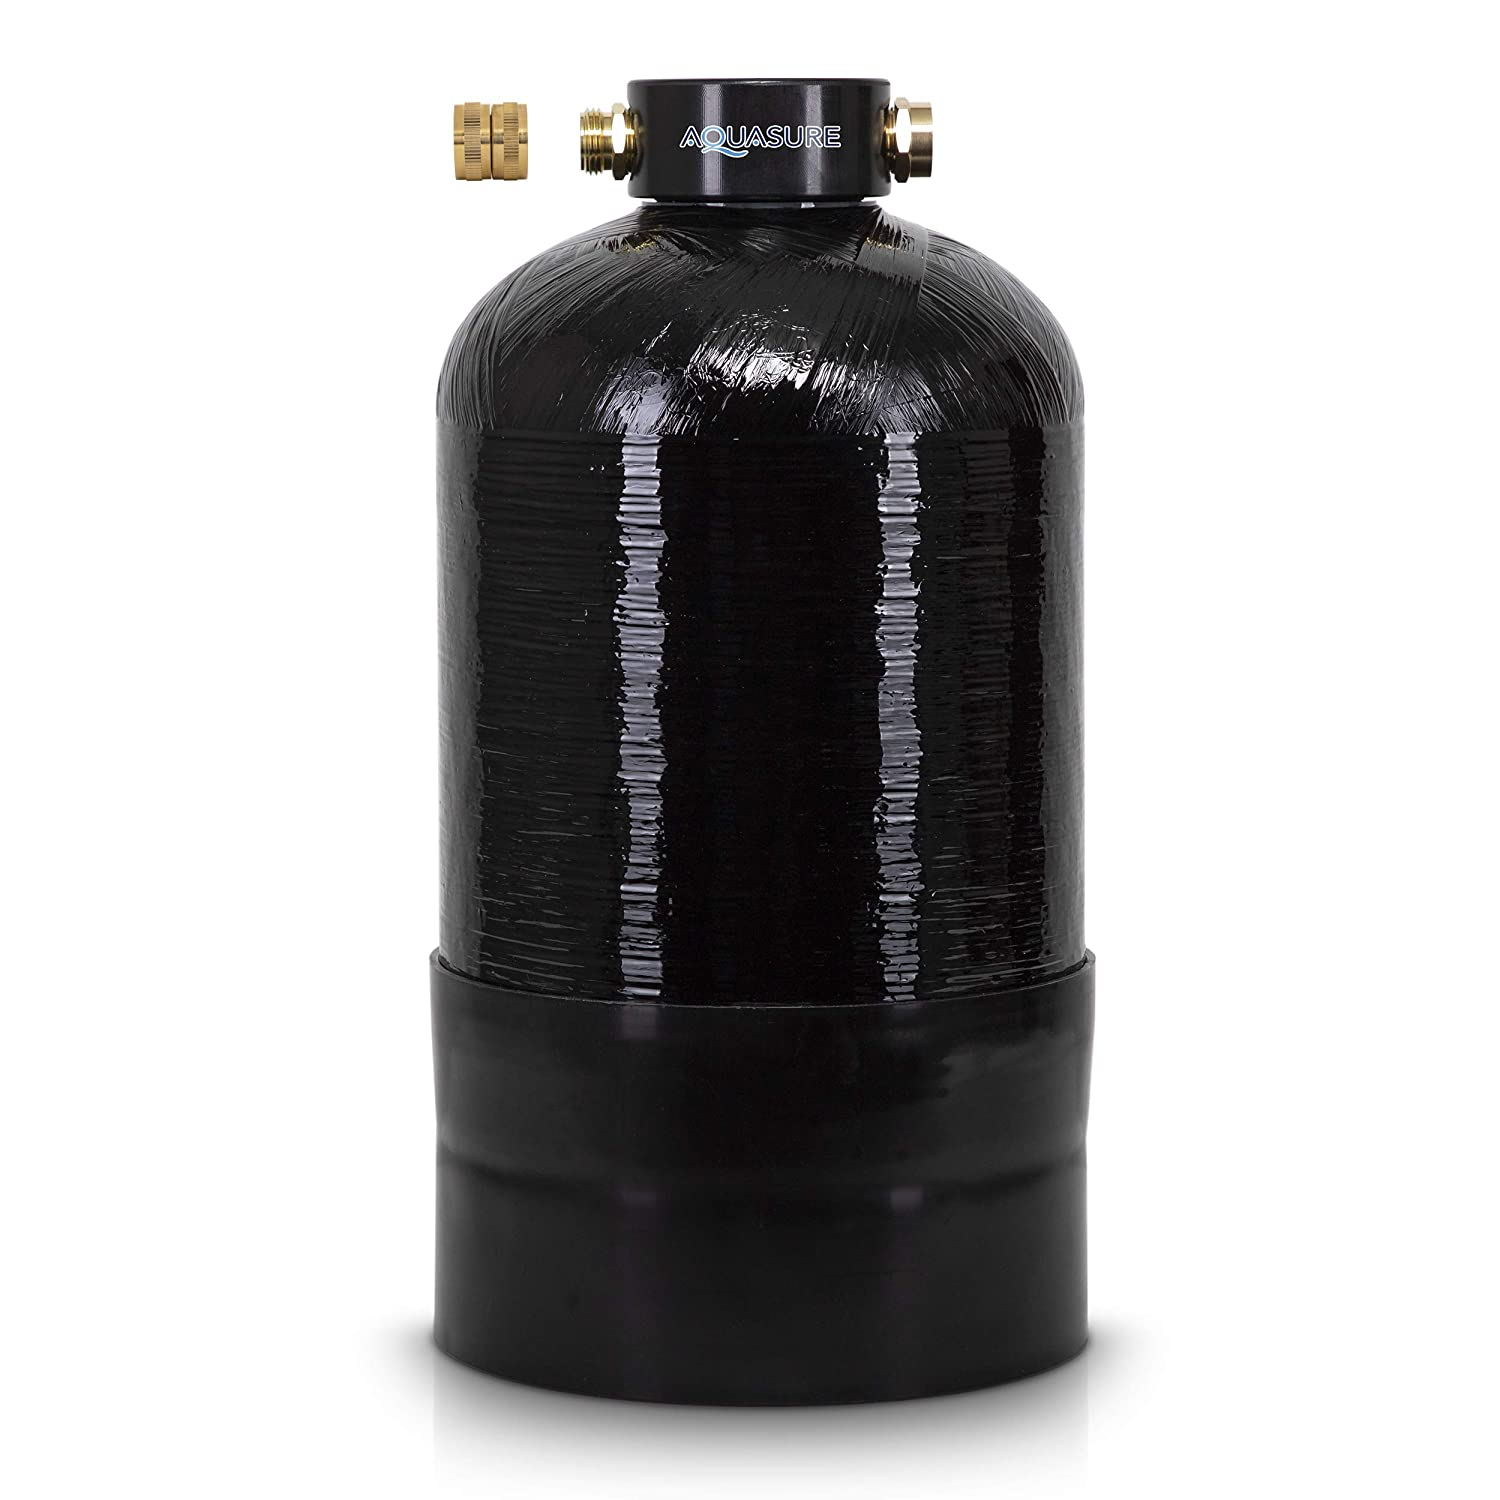 """Portable Water Softener Pro 16,000 Grain Premium Grade RV, Trailers, Boats, Mobile Car Washing, High Flow 3/4"""" GH Ports"""